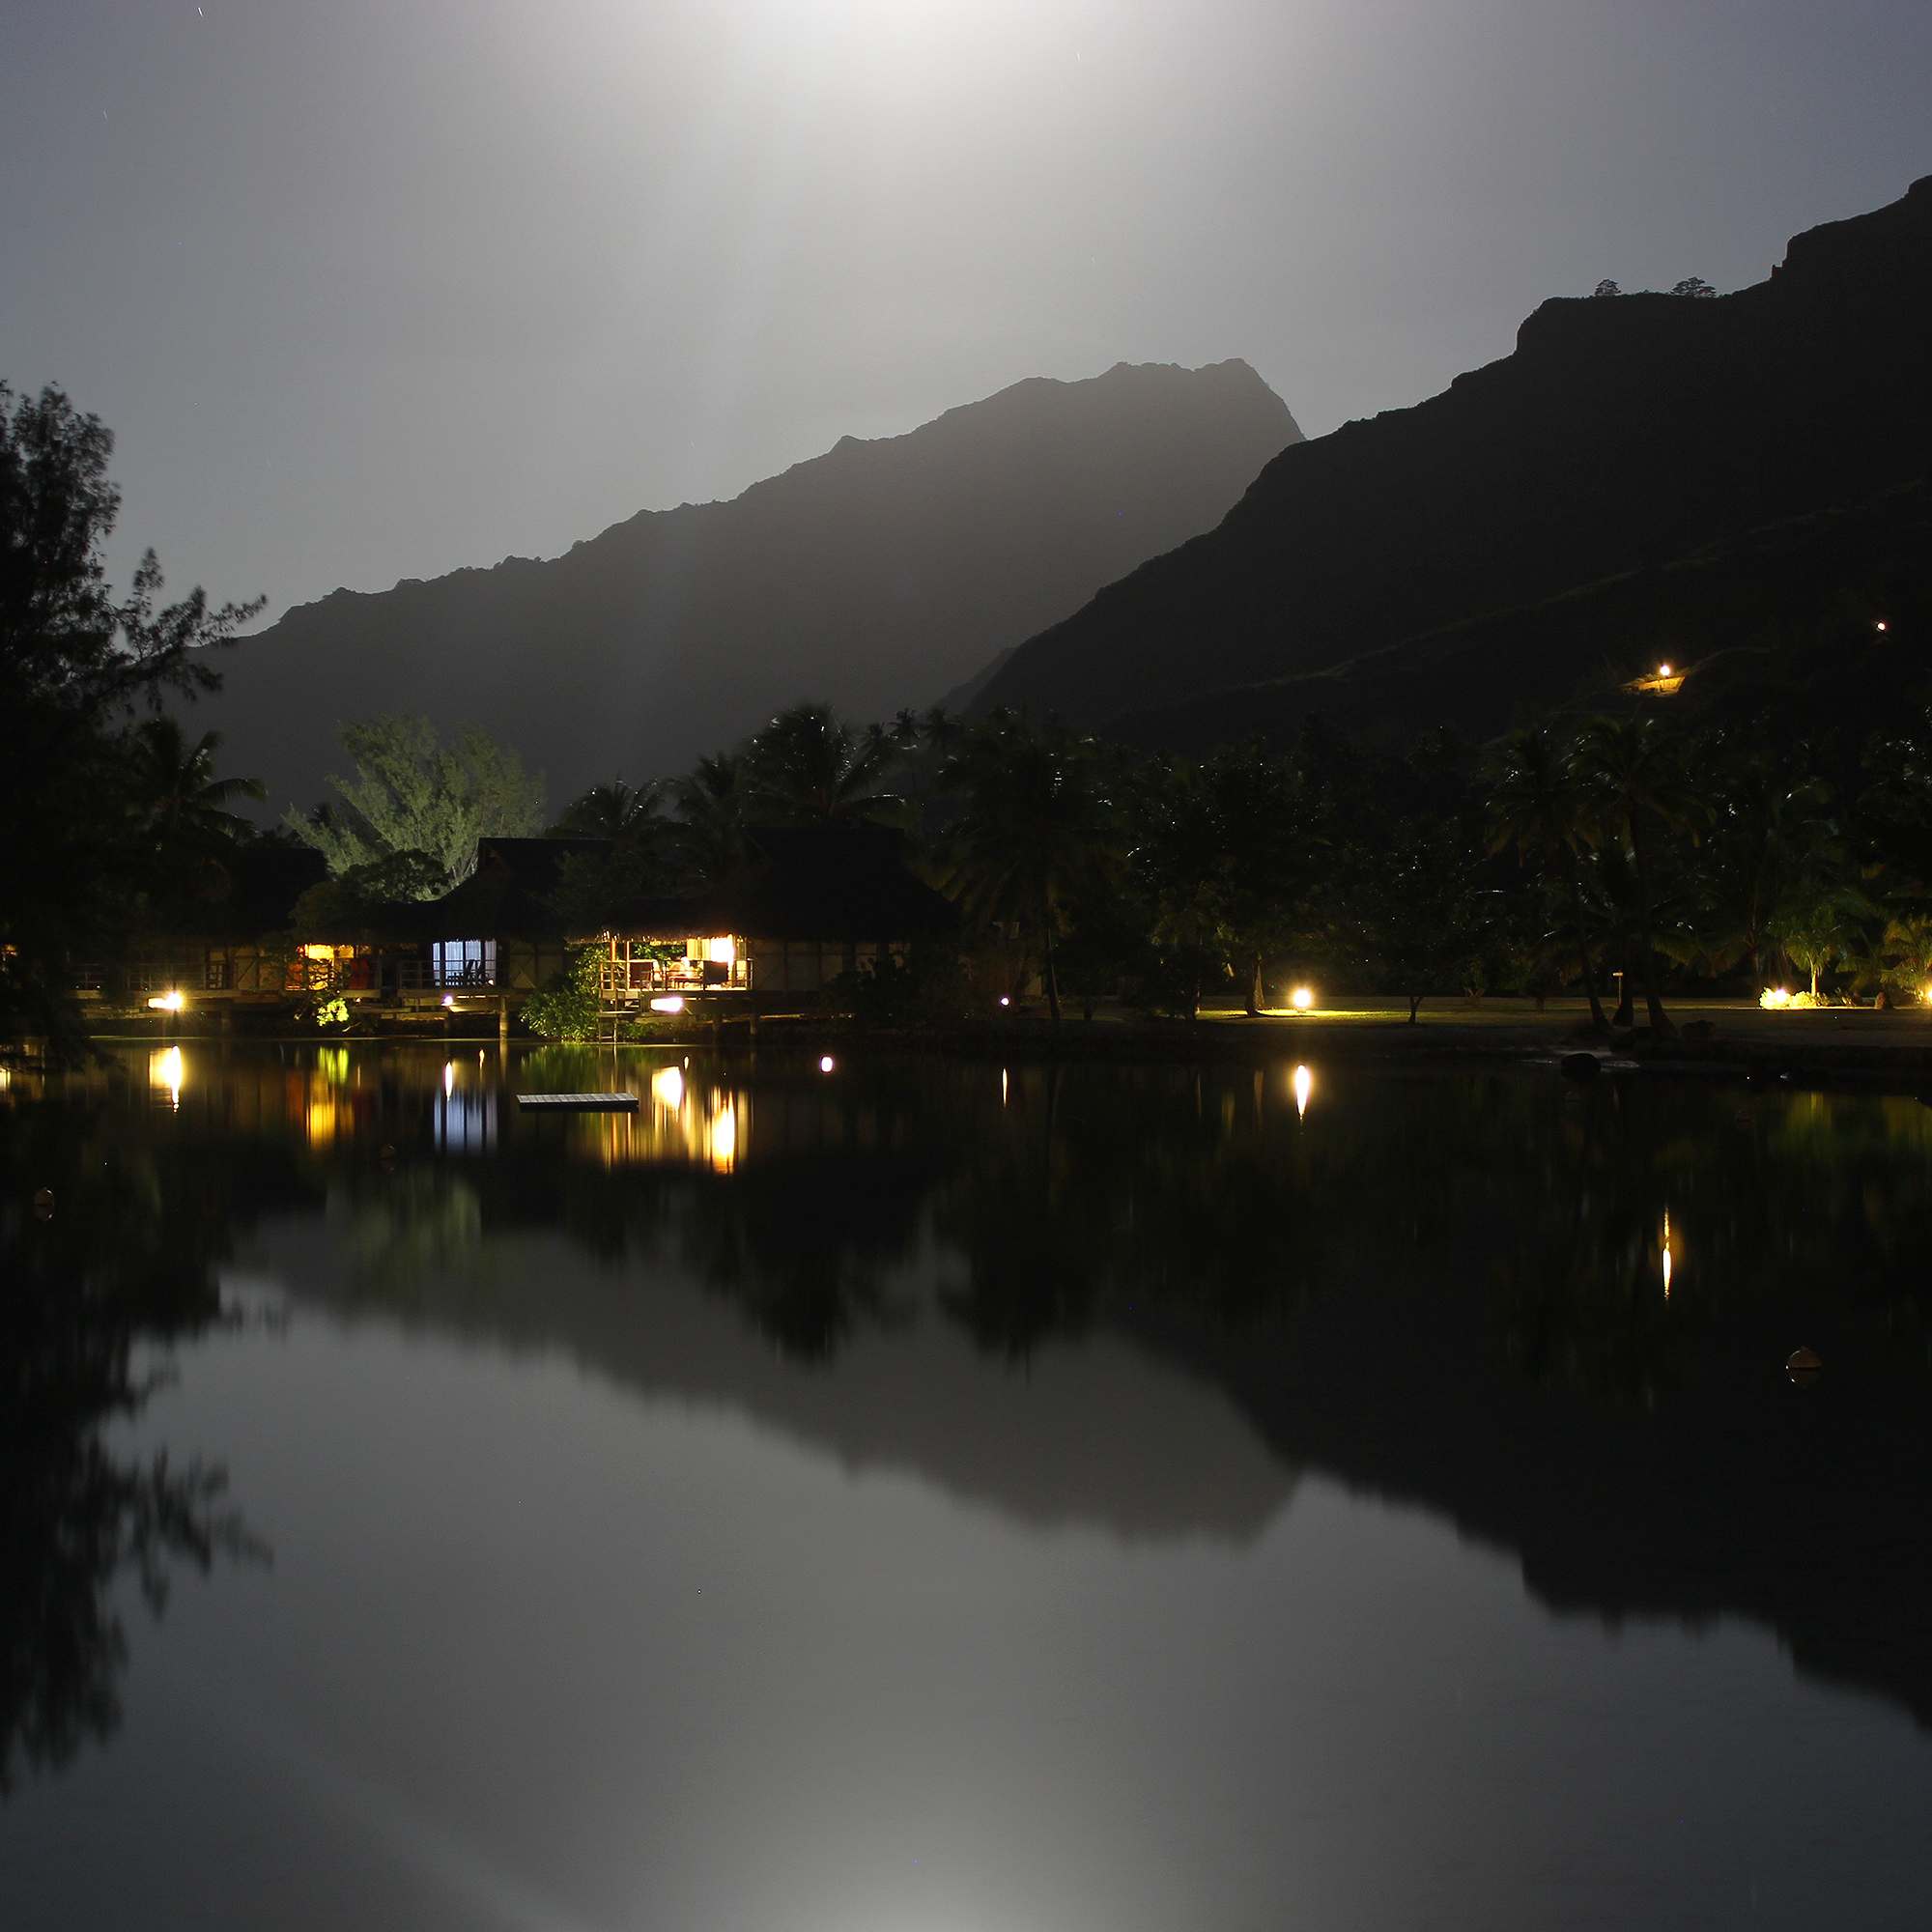 moorea-tahiti-night-reflections